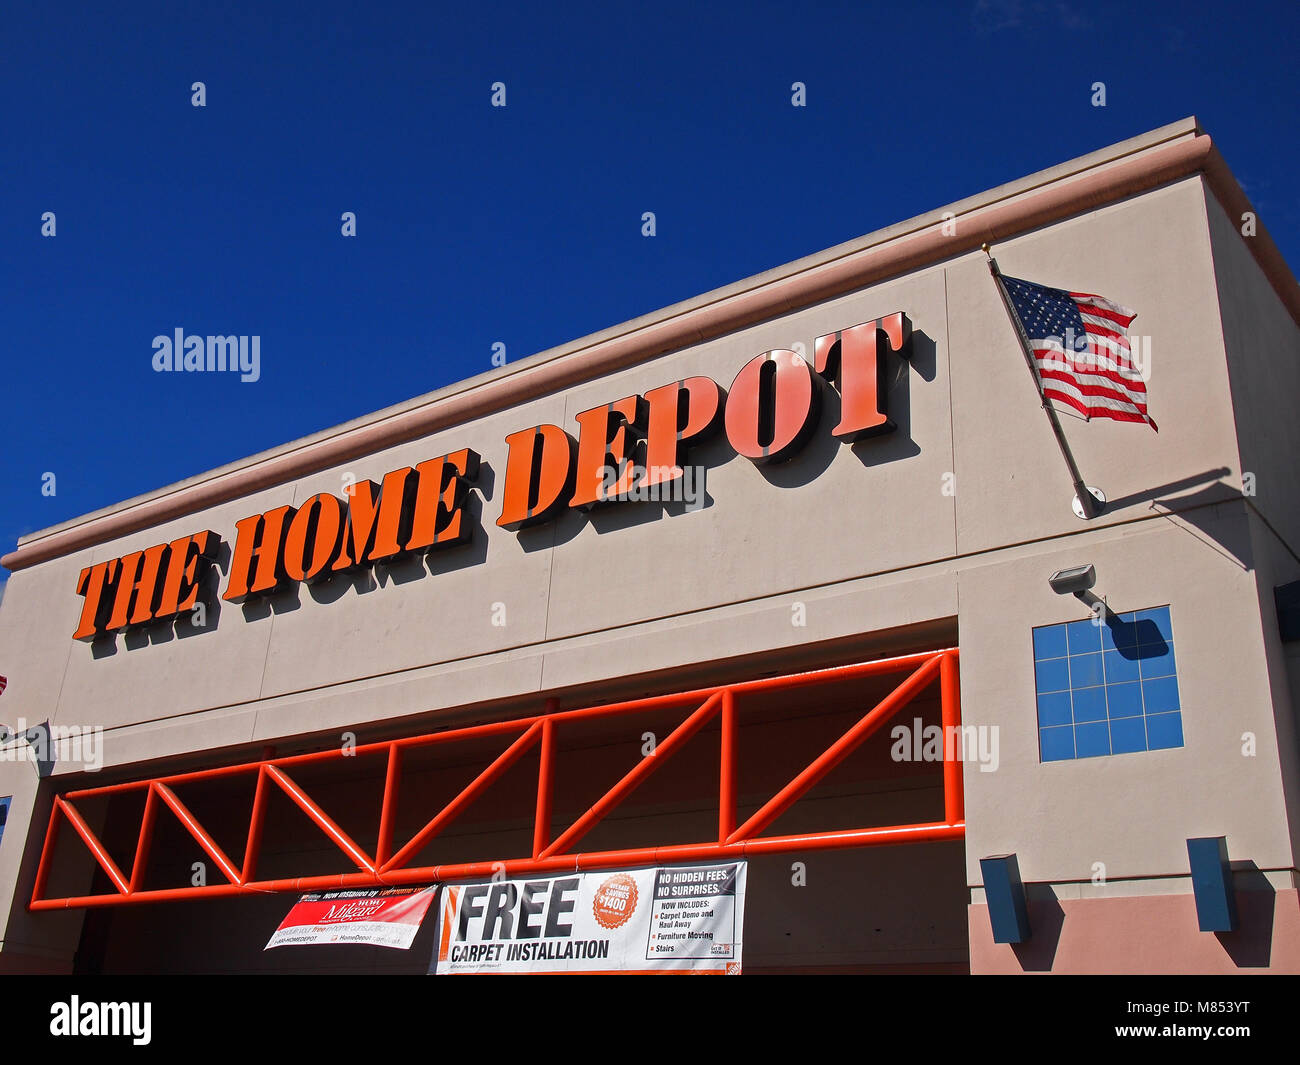 Carpet Depot Stock Photos   Carpet Depot Stock Images   Alamy the Home Depot Store  California  USA    Stock Image